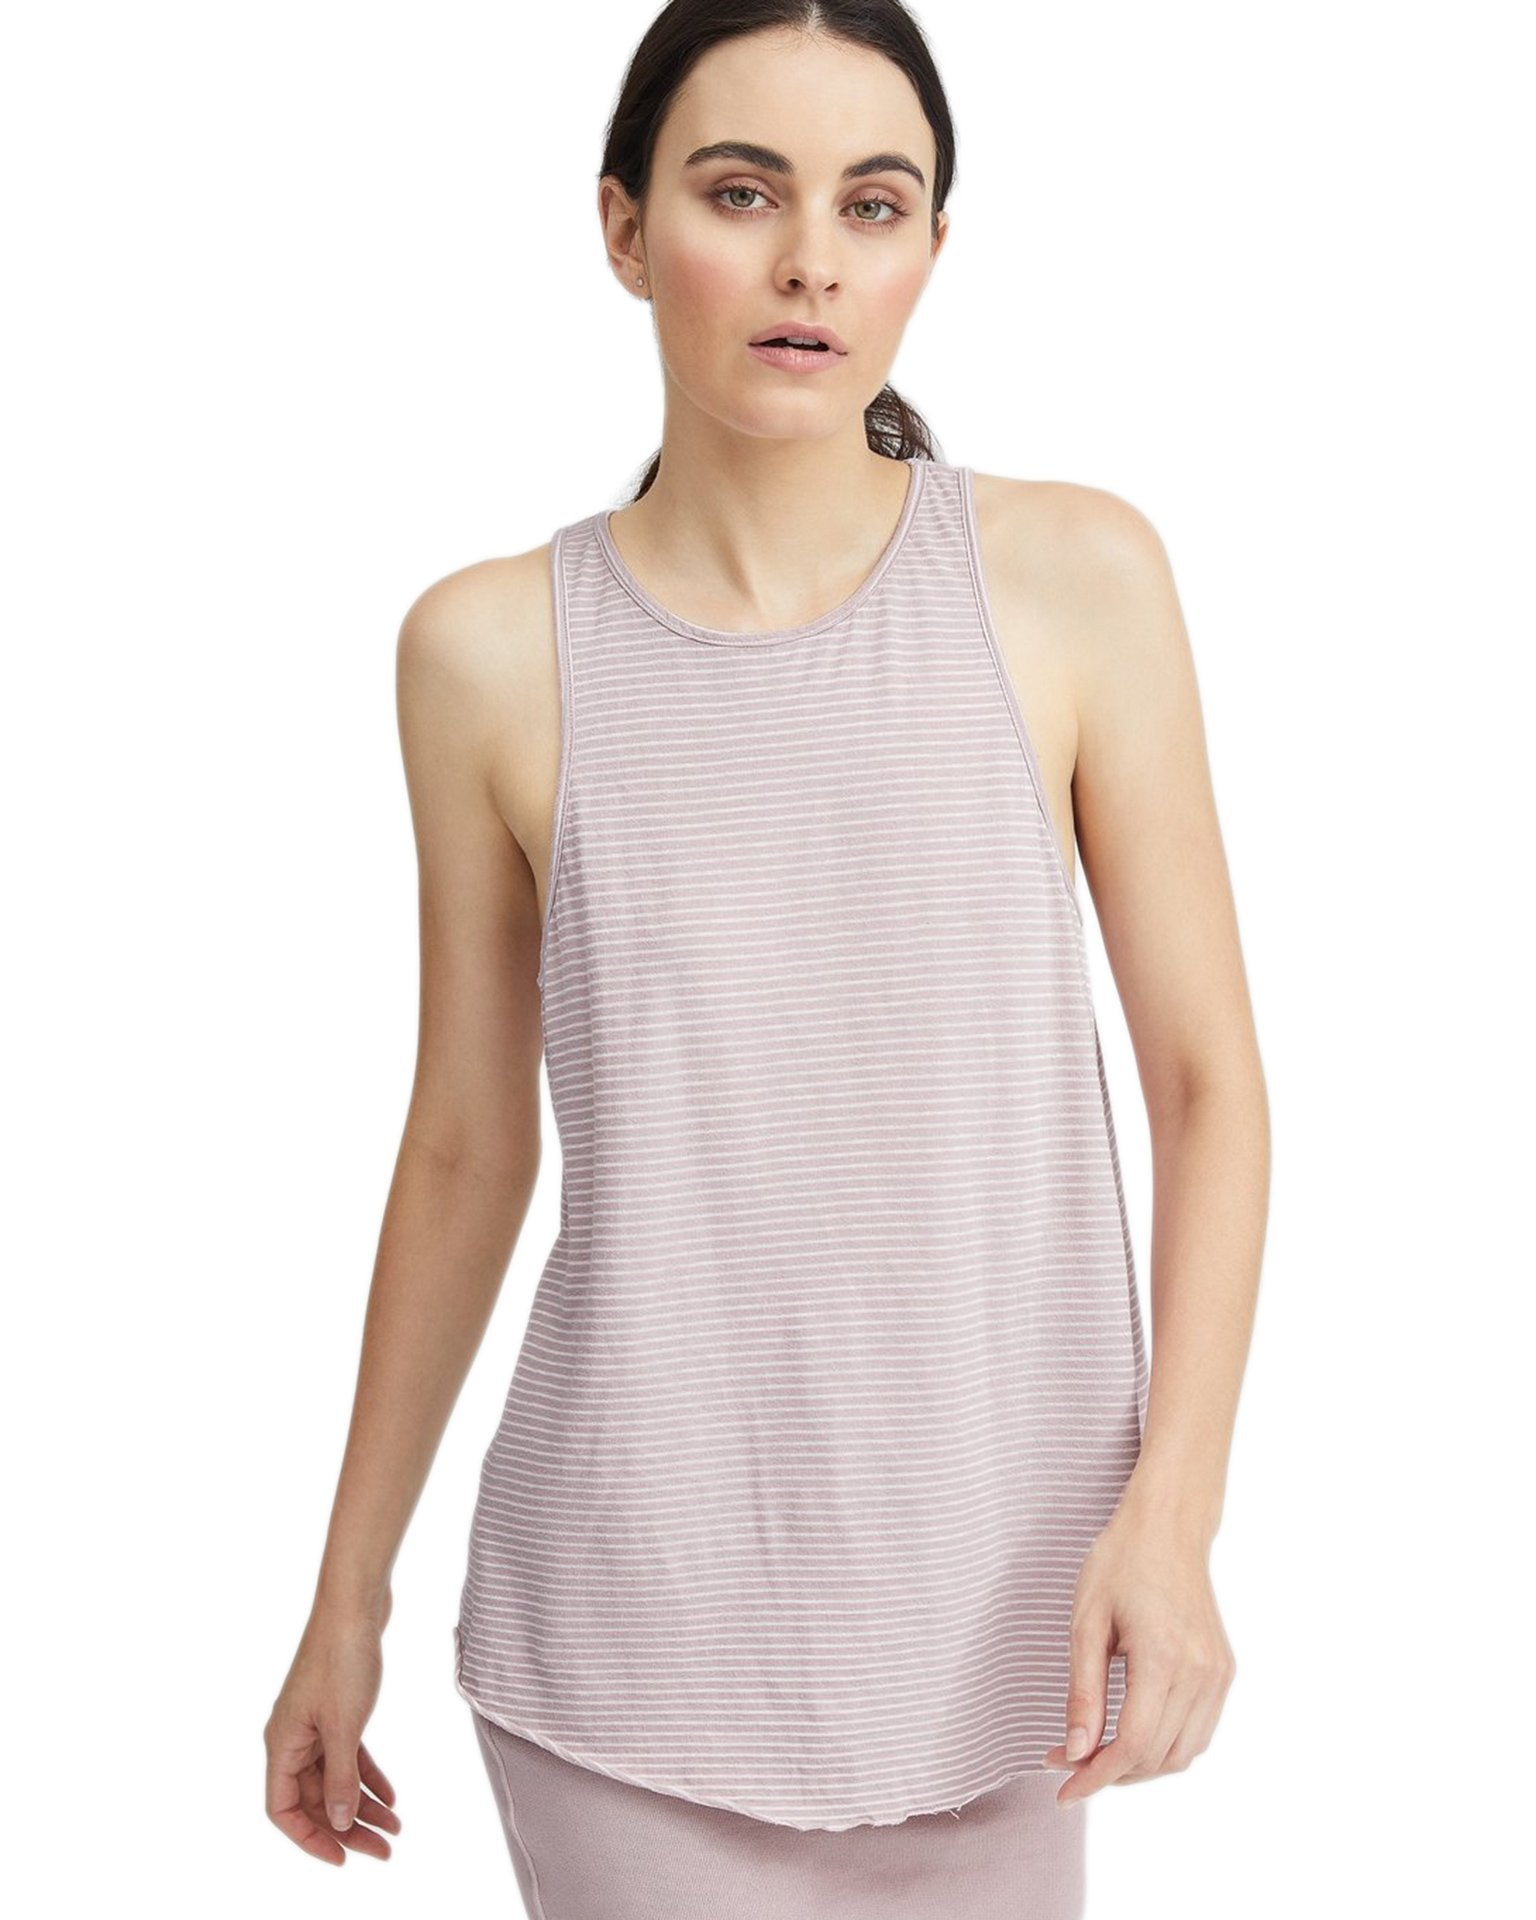 Tee Lab Clothing Dirty Ballerina Stripe / XS High Neck Tank in Dirty Ballerina Stripe